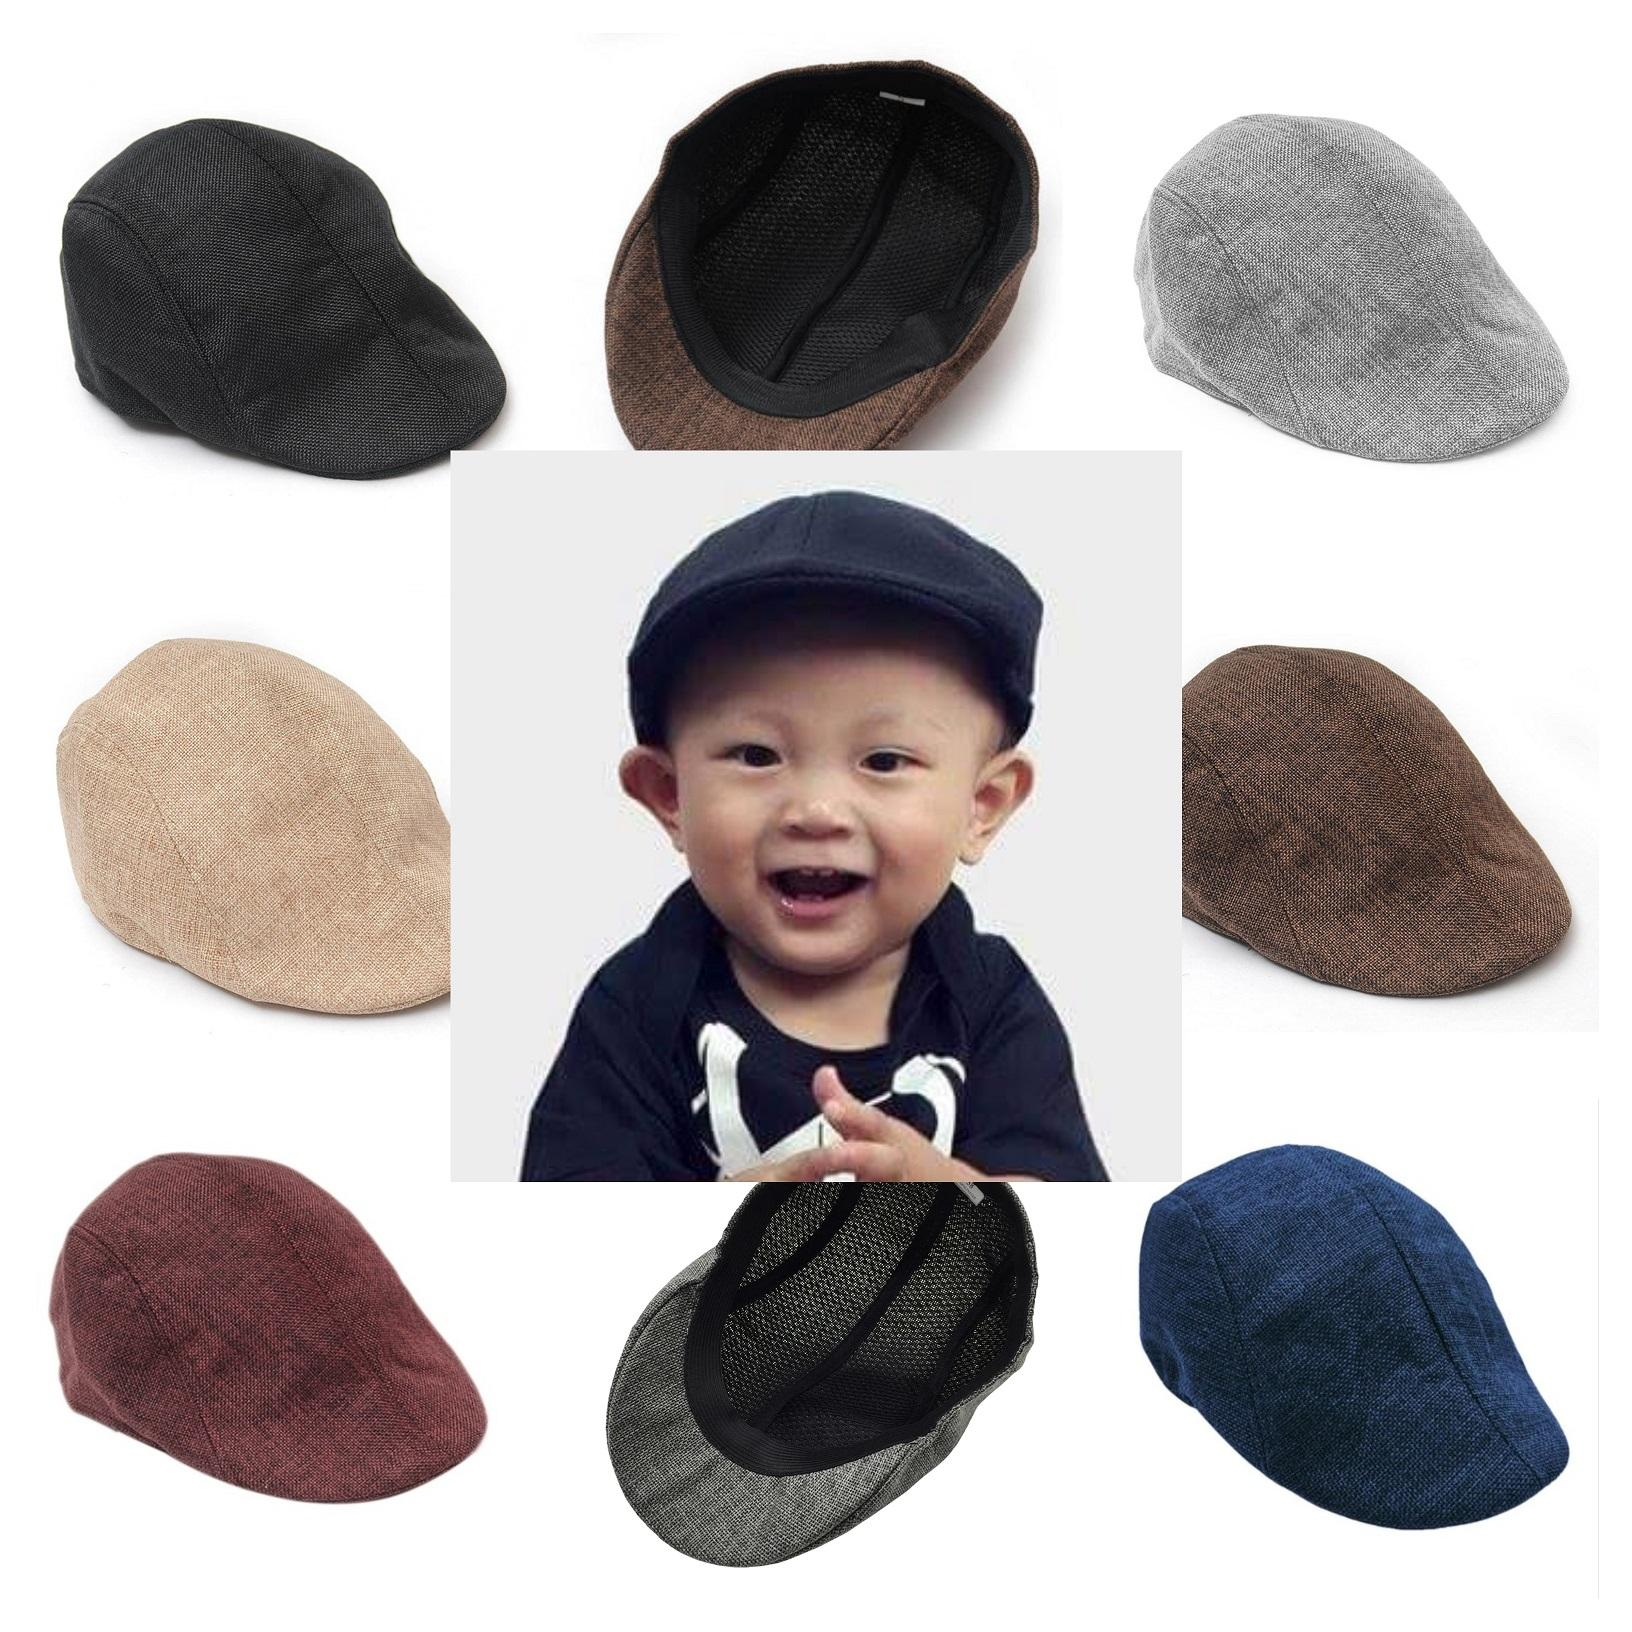 e3c74784 Boys Caps for sale - Boys Hats Online Deals & Prices in Philippines ...